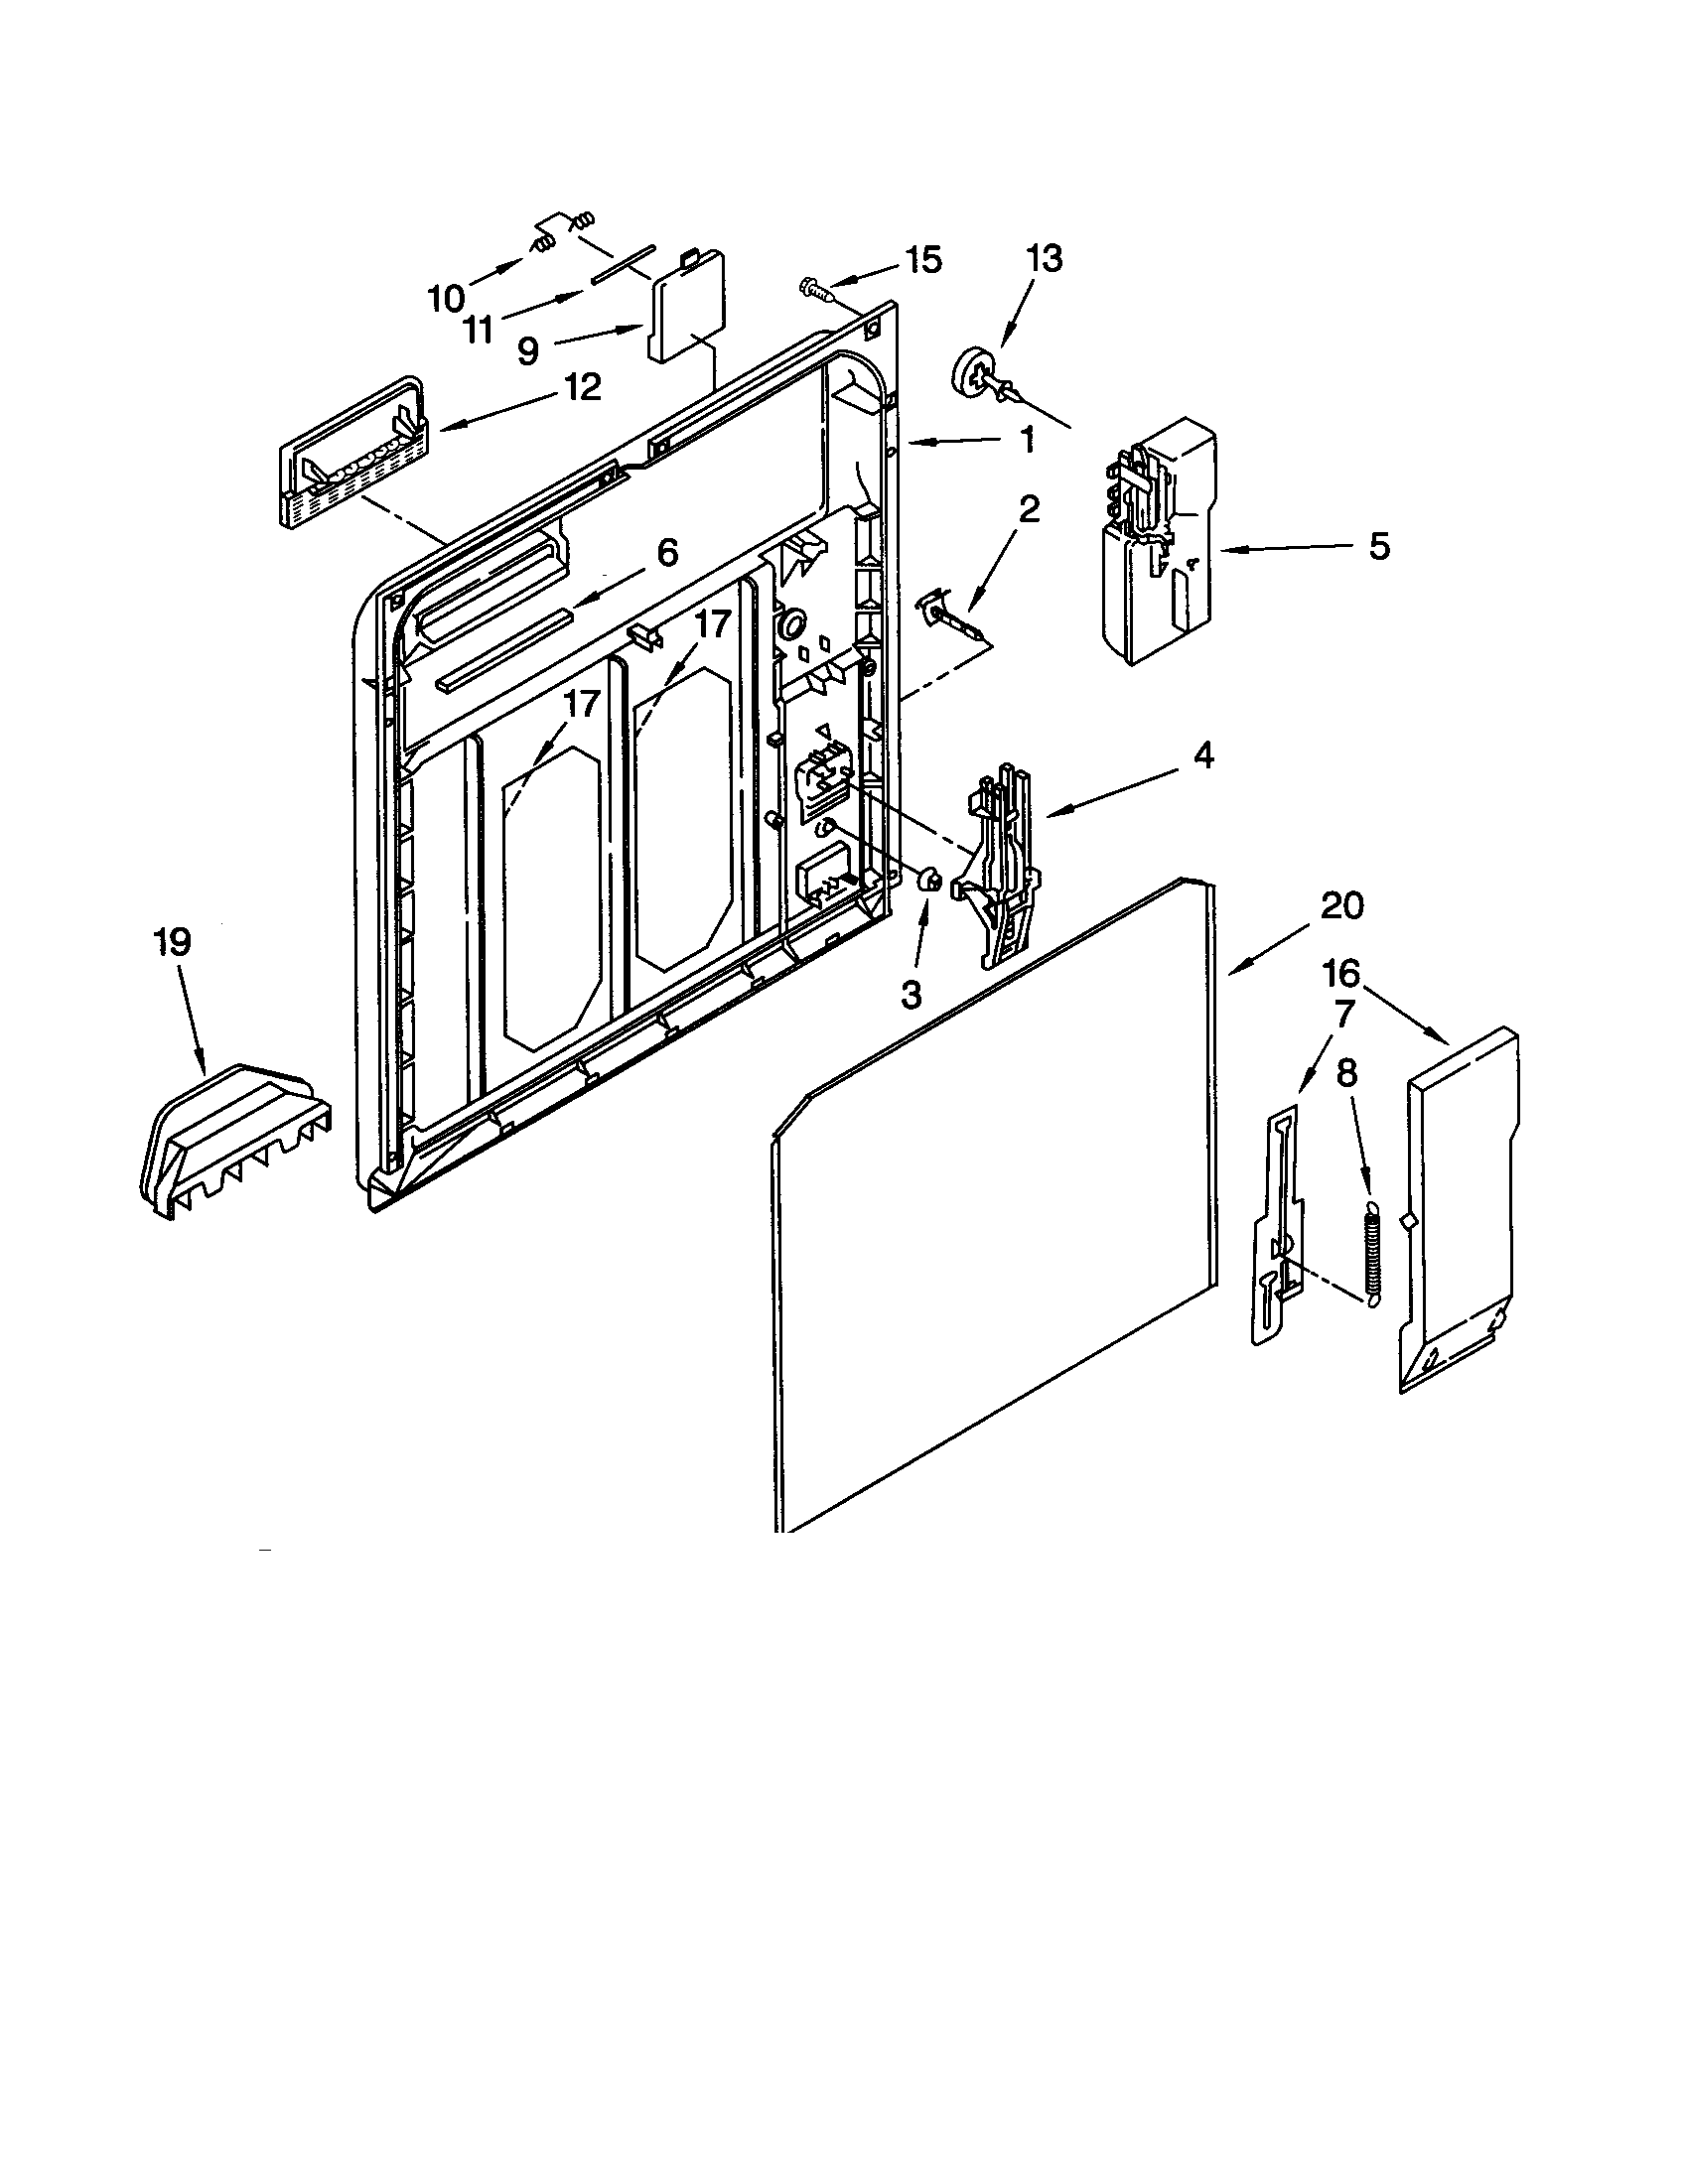 INNER DOOR Diagram & Parts List for Model gu980scgq3